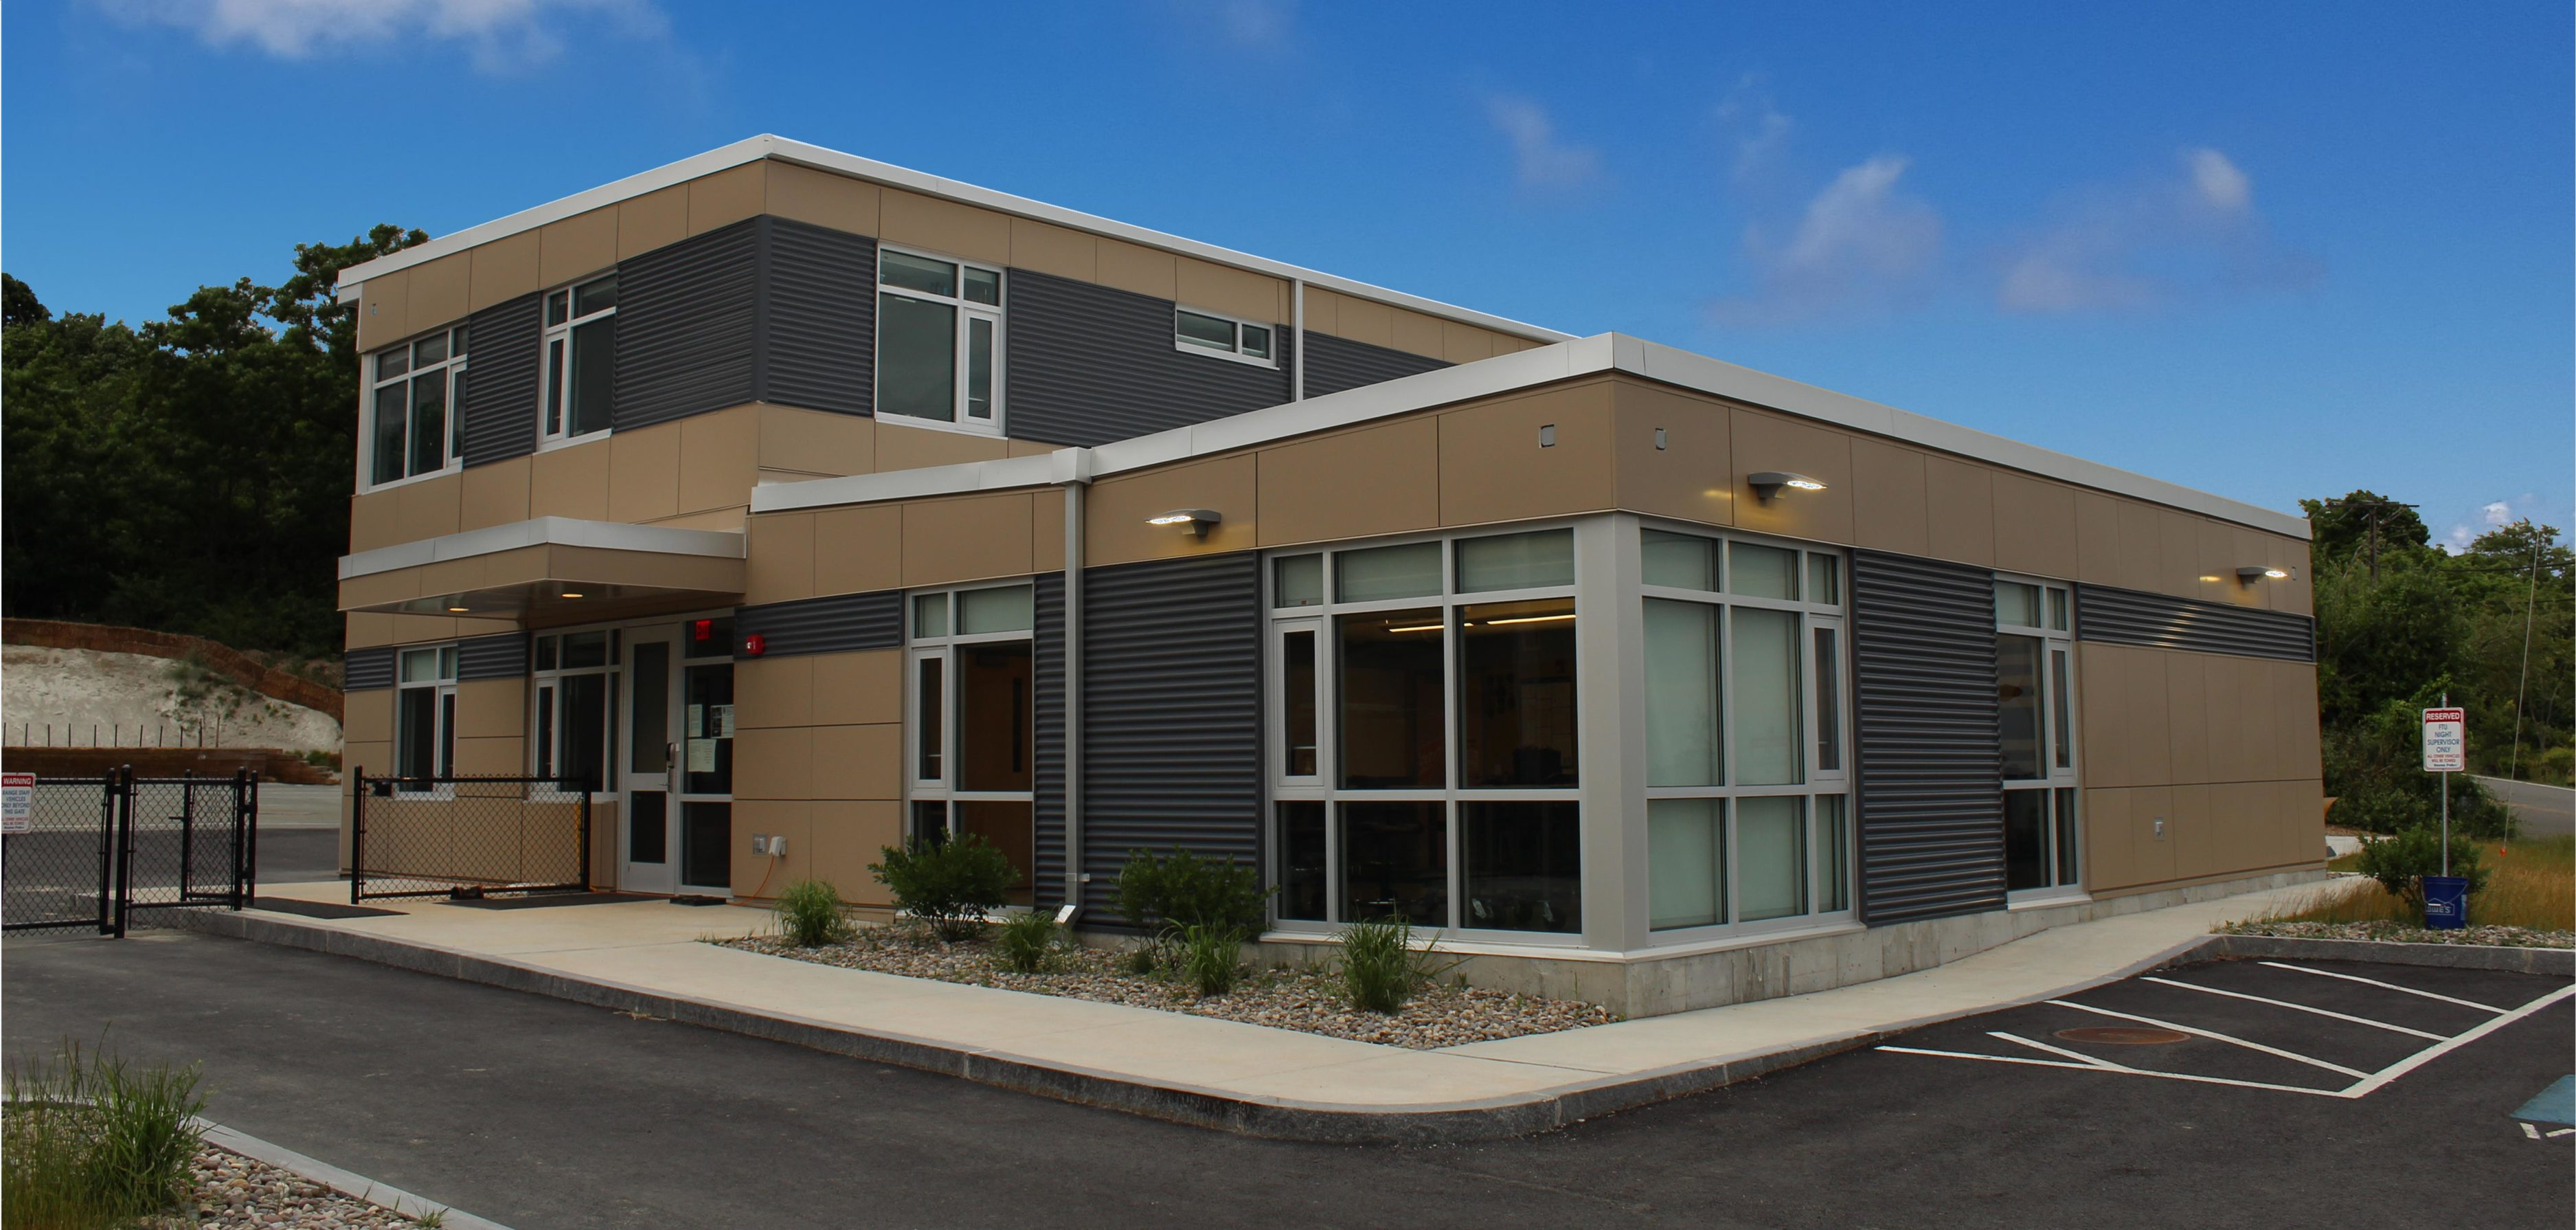 What are Modular Buildings?